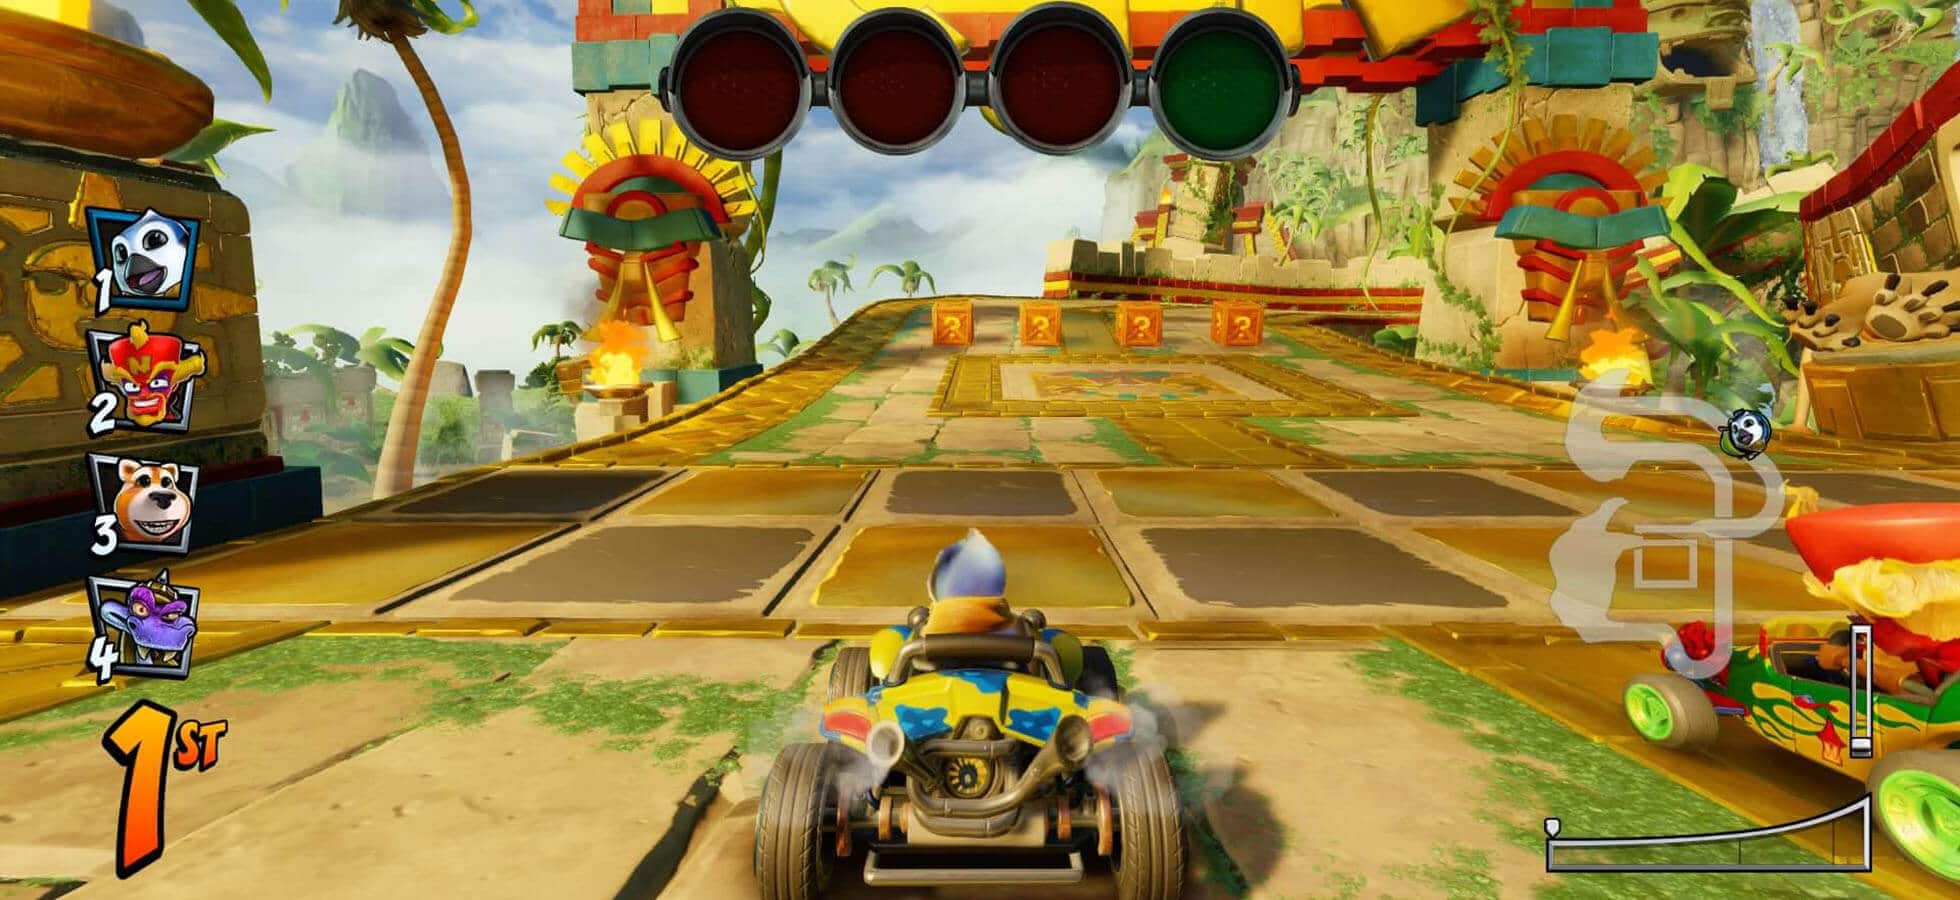 2 Learn to start with a speed boost - Crash Team Racing